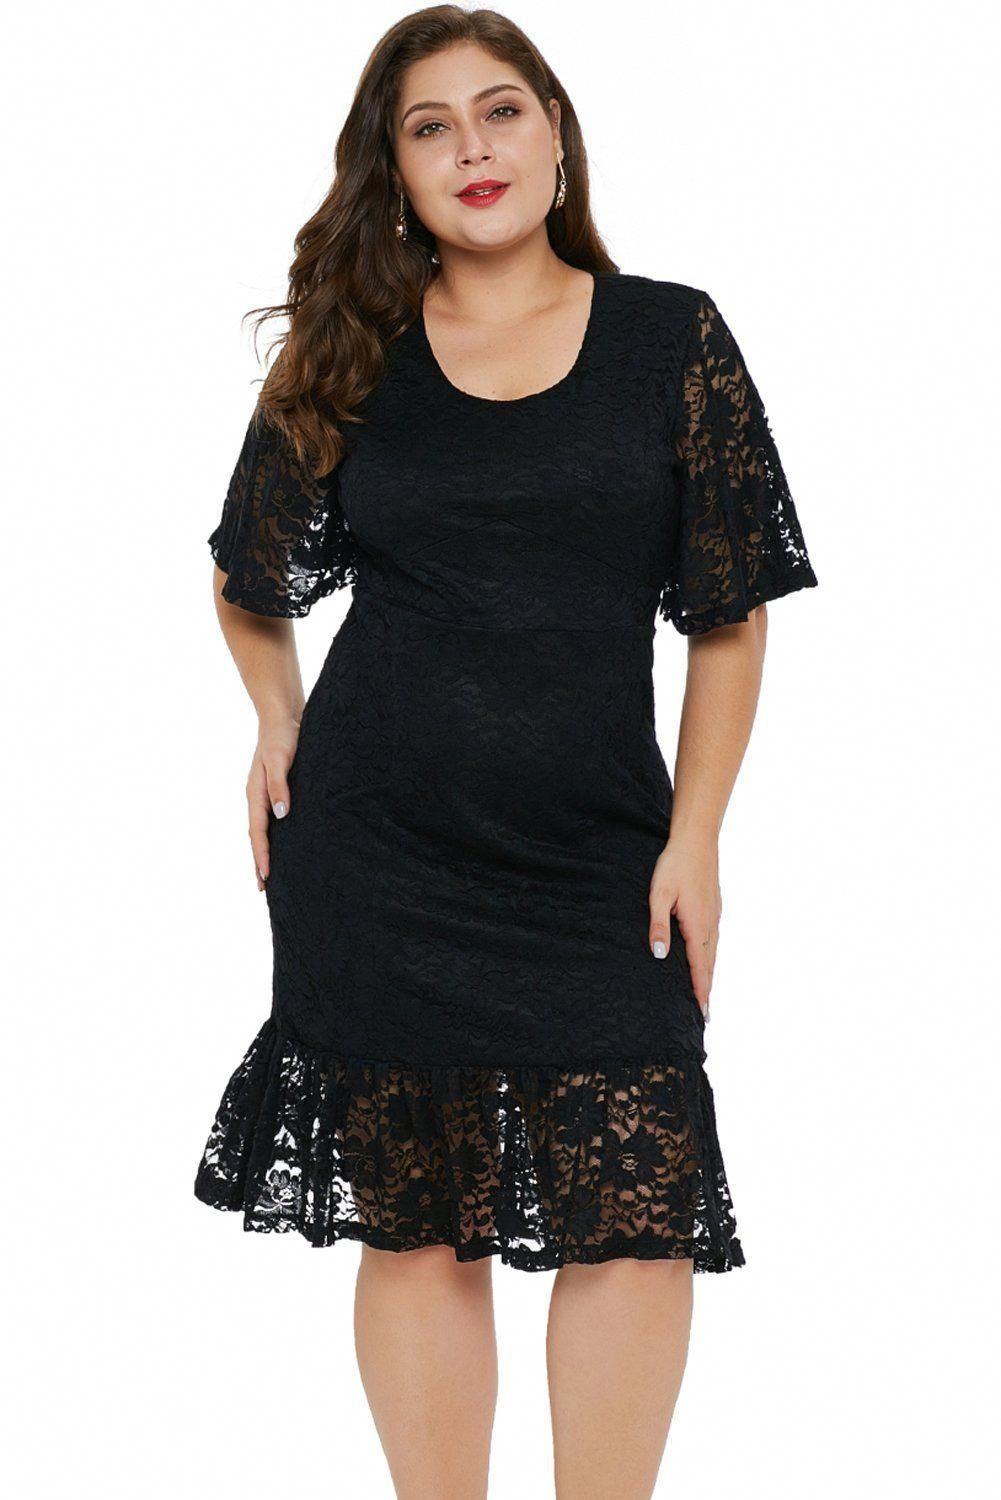 a41127e38c6a Plus size styles for ladies #plussizeclothing | Stunning Plus size ...